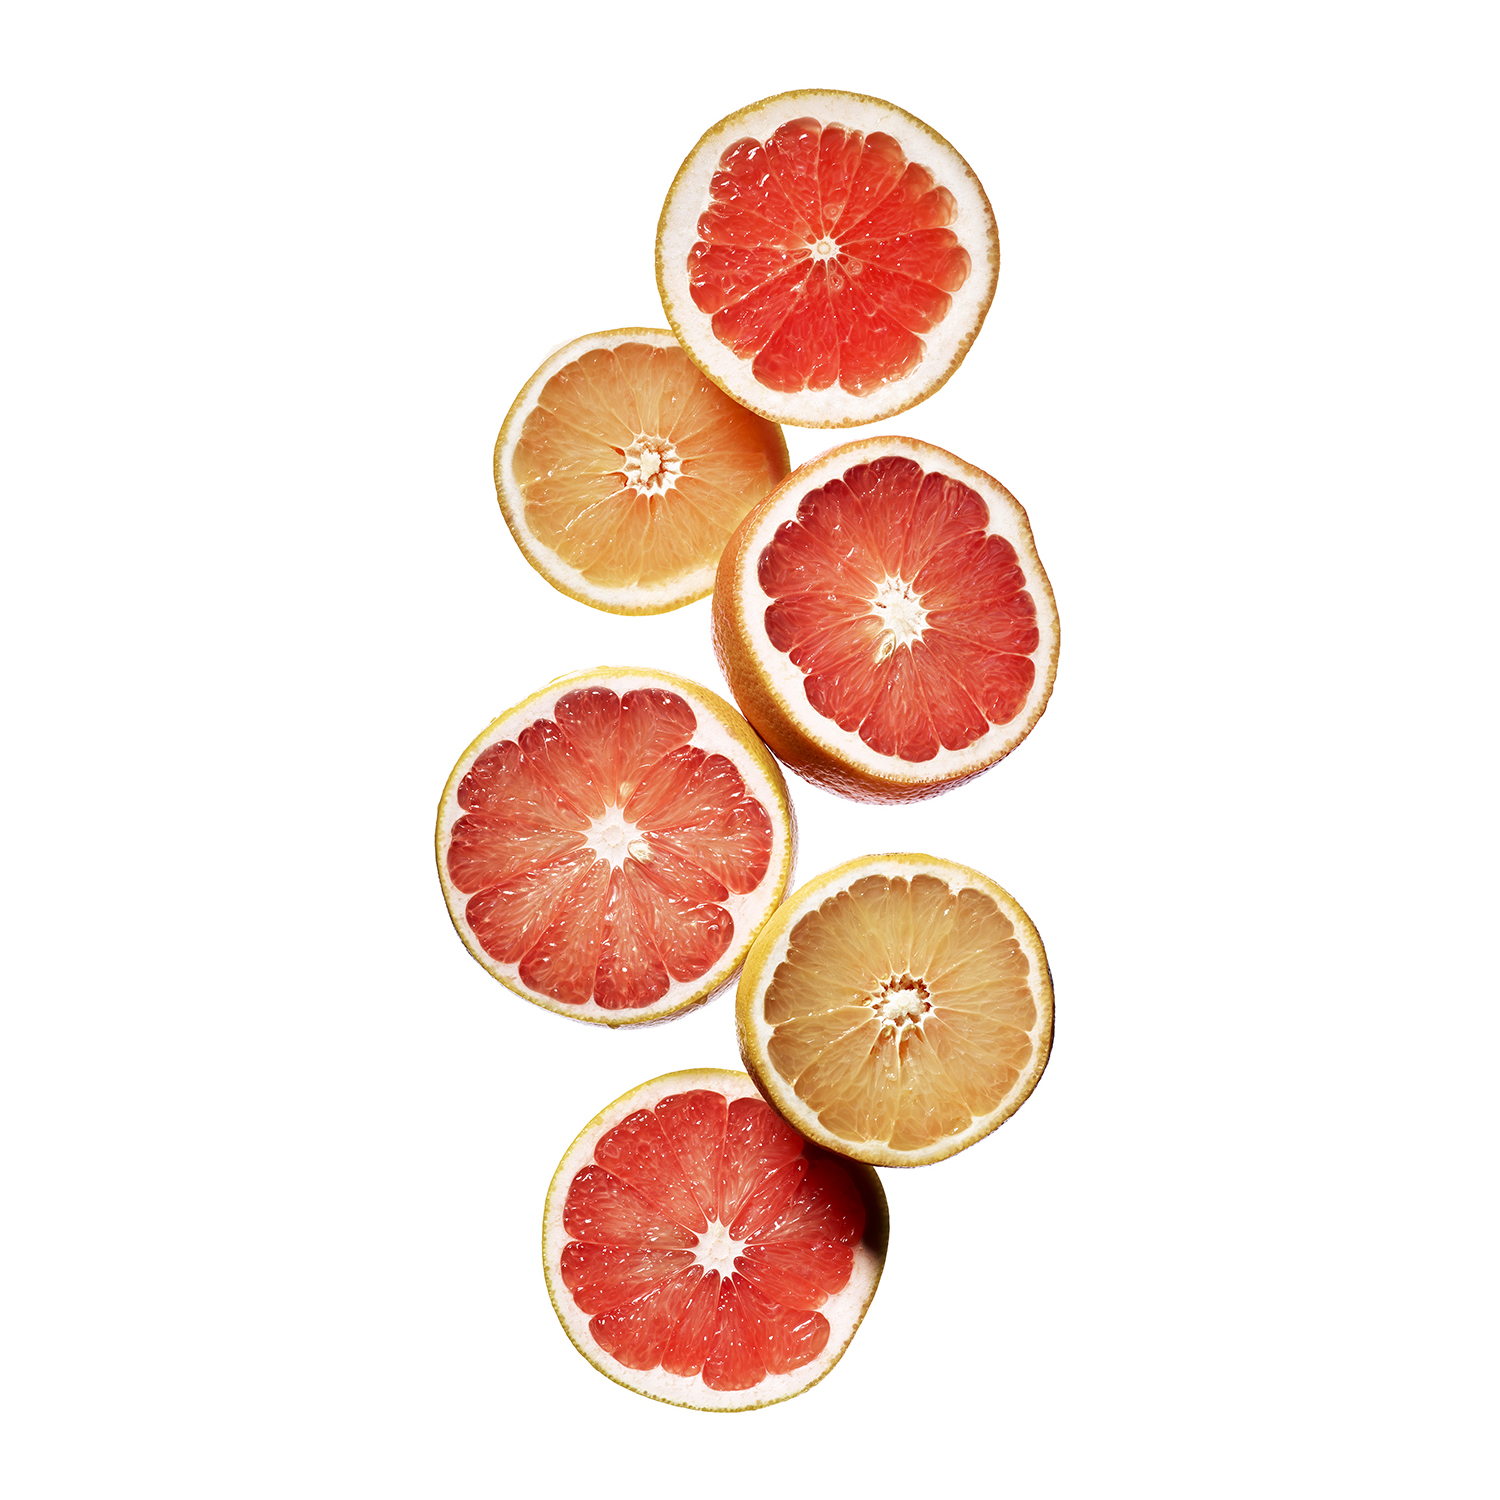 creative-ways-use-grapefruits